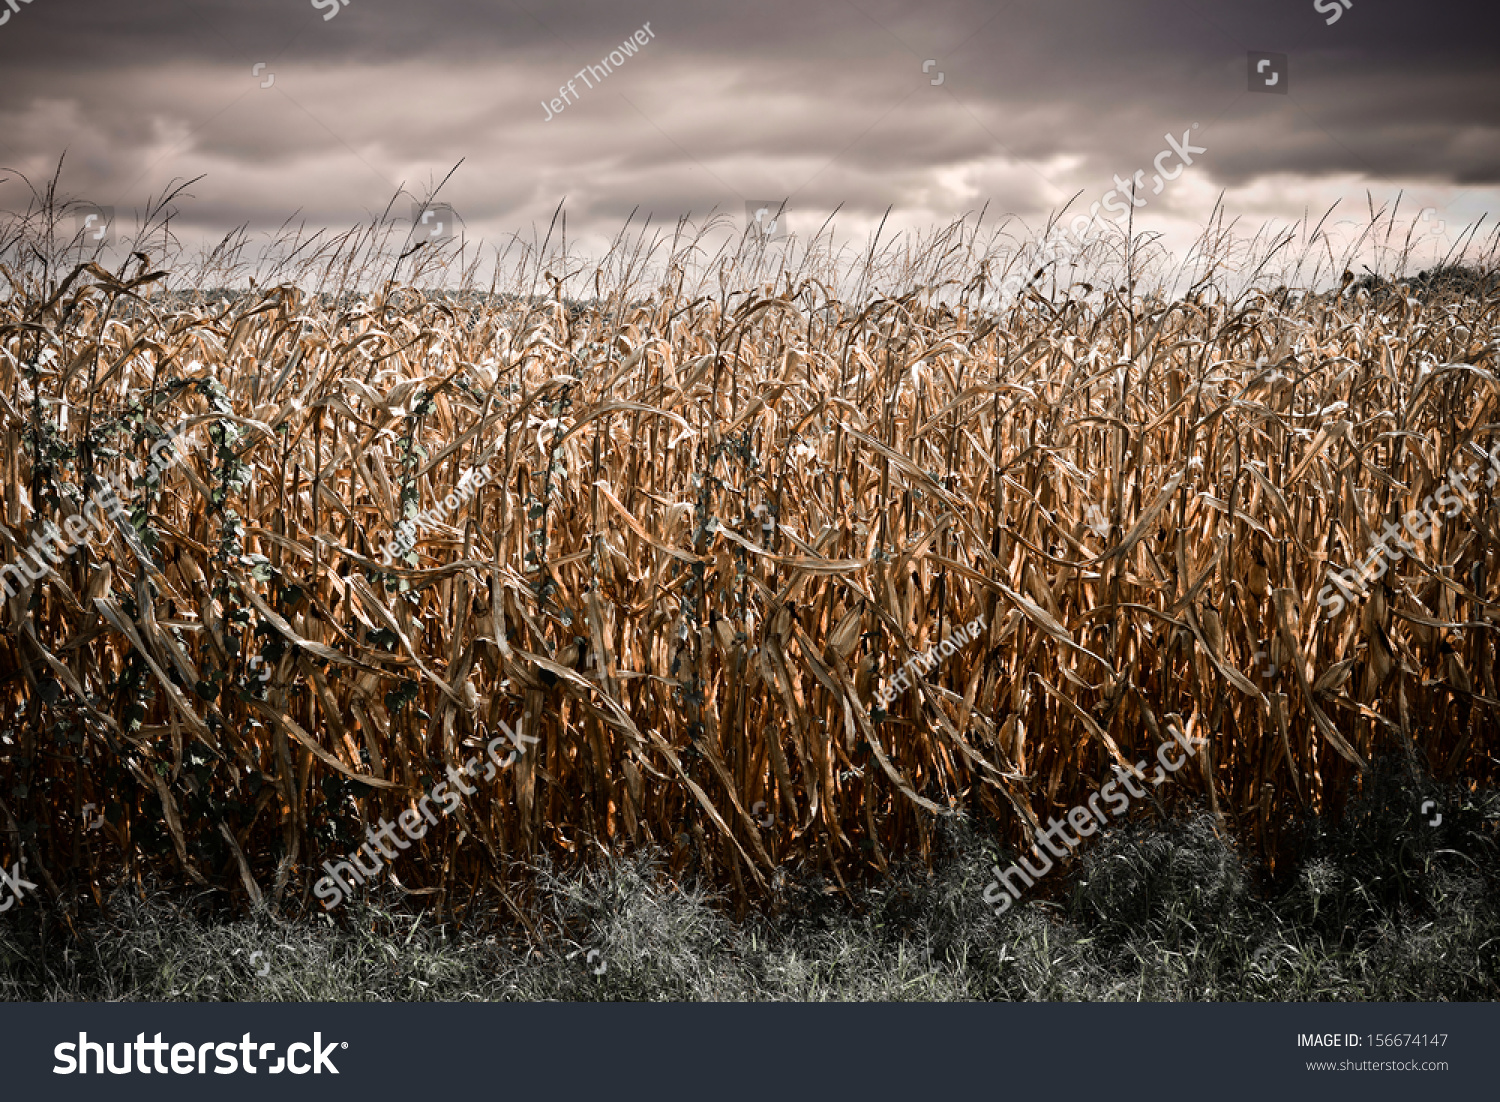 Sod Field Stock Photos, Images, & Pictures | Shutterstock